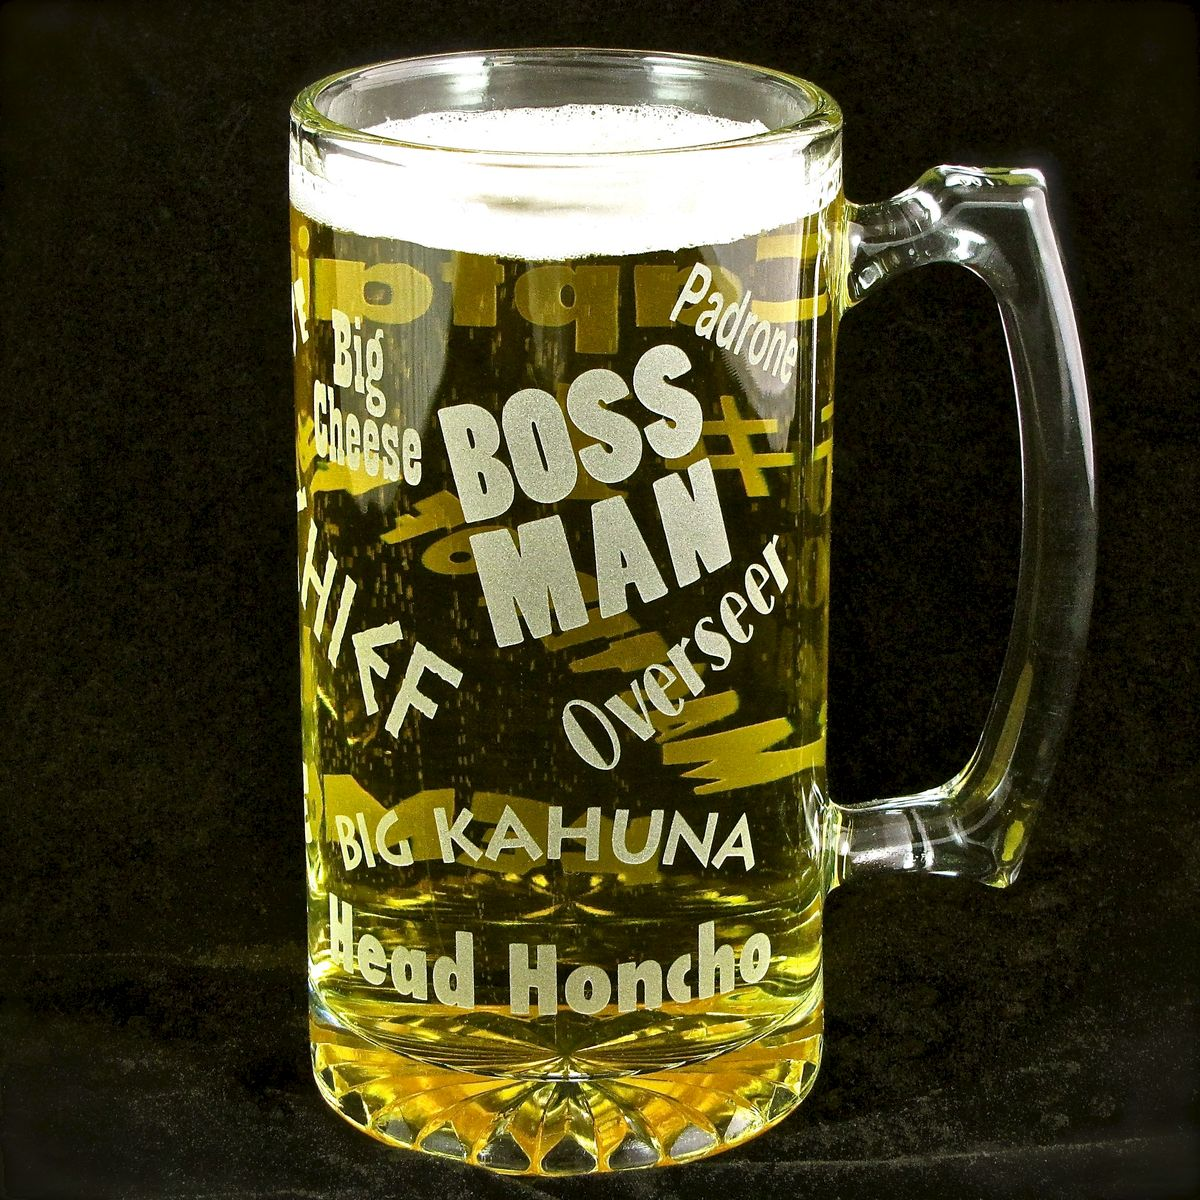 Wedding Gift For Boss: Boss Man Beer Stein, Gift For Man, Boss For Bosses Day